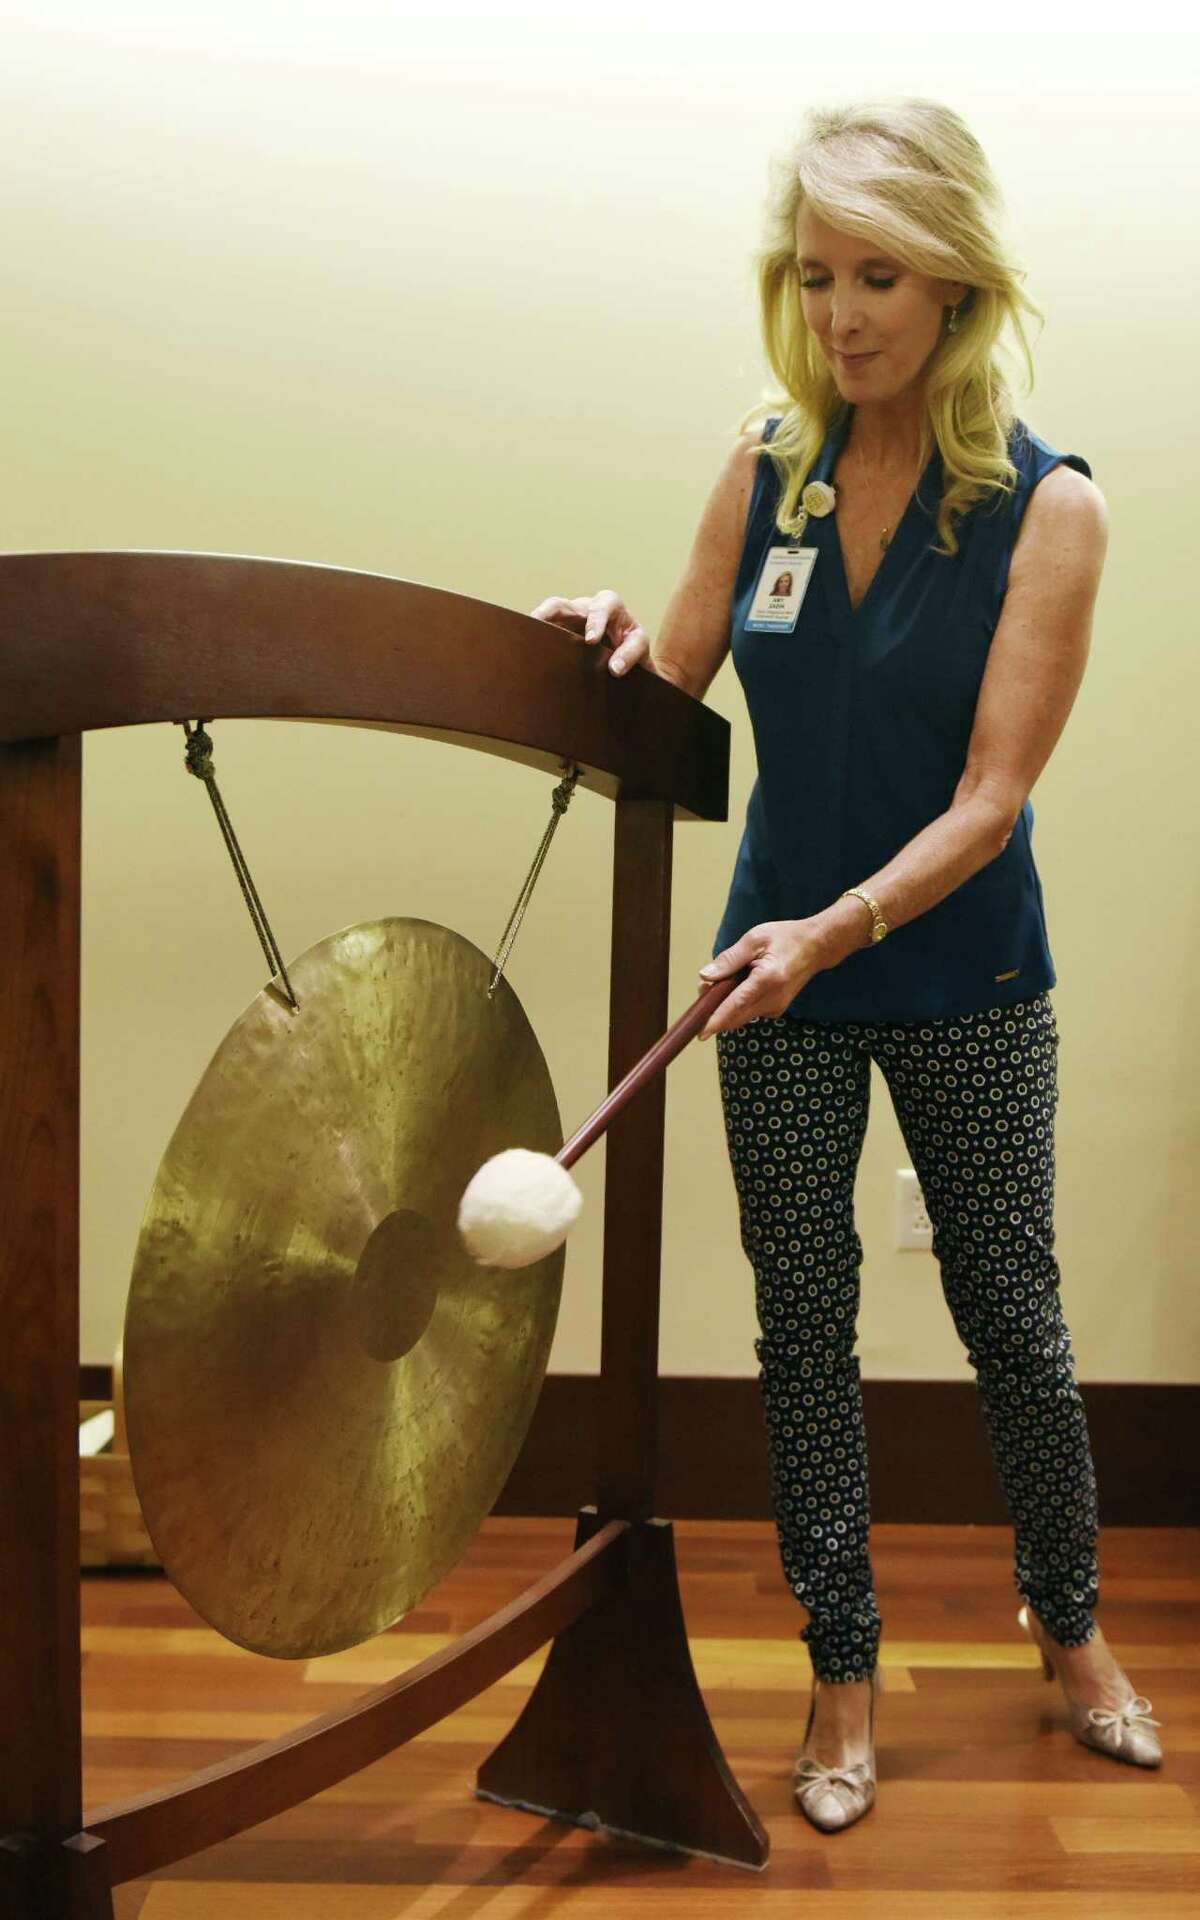 Music therapist Dr. Amy Zabindemonstrates an aspect of her music therapy on the gong at Greenwich Hospital in Greenwich on Wednesday.